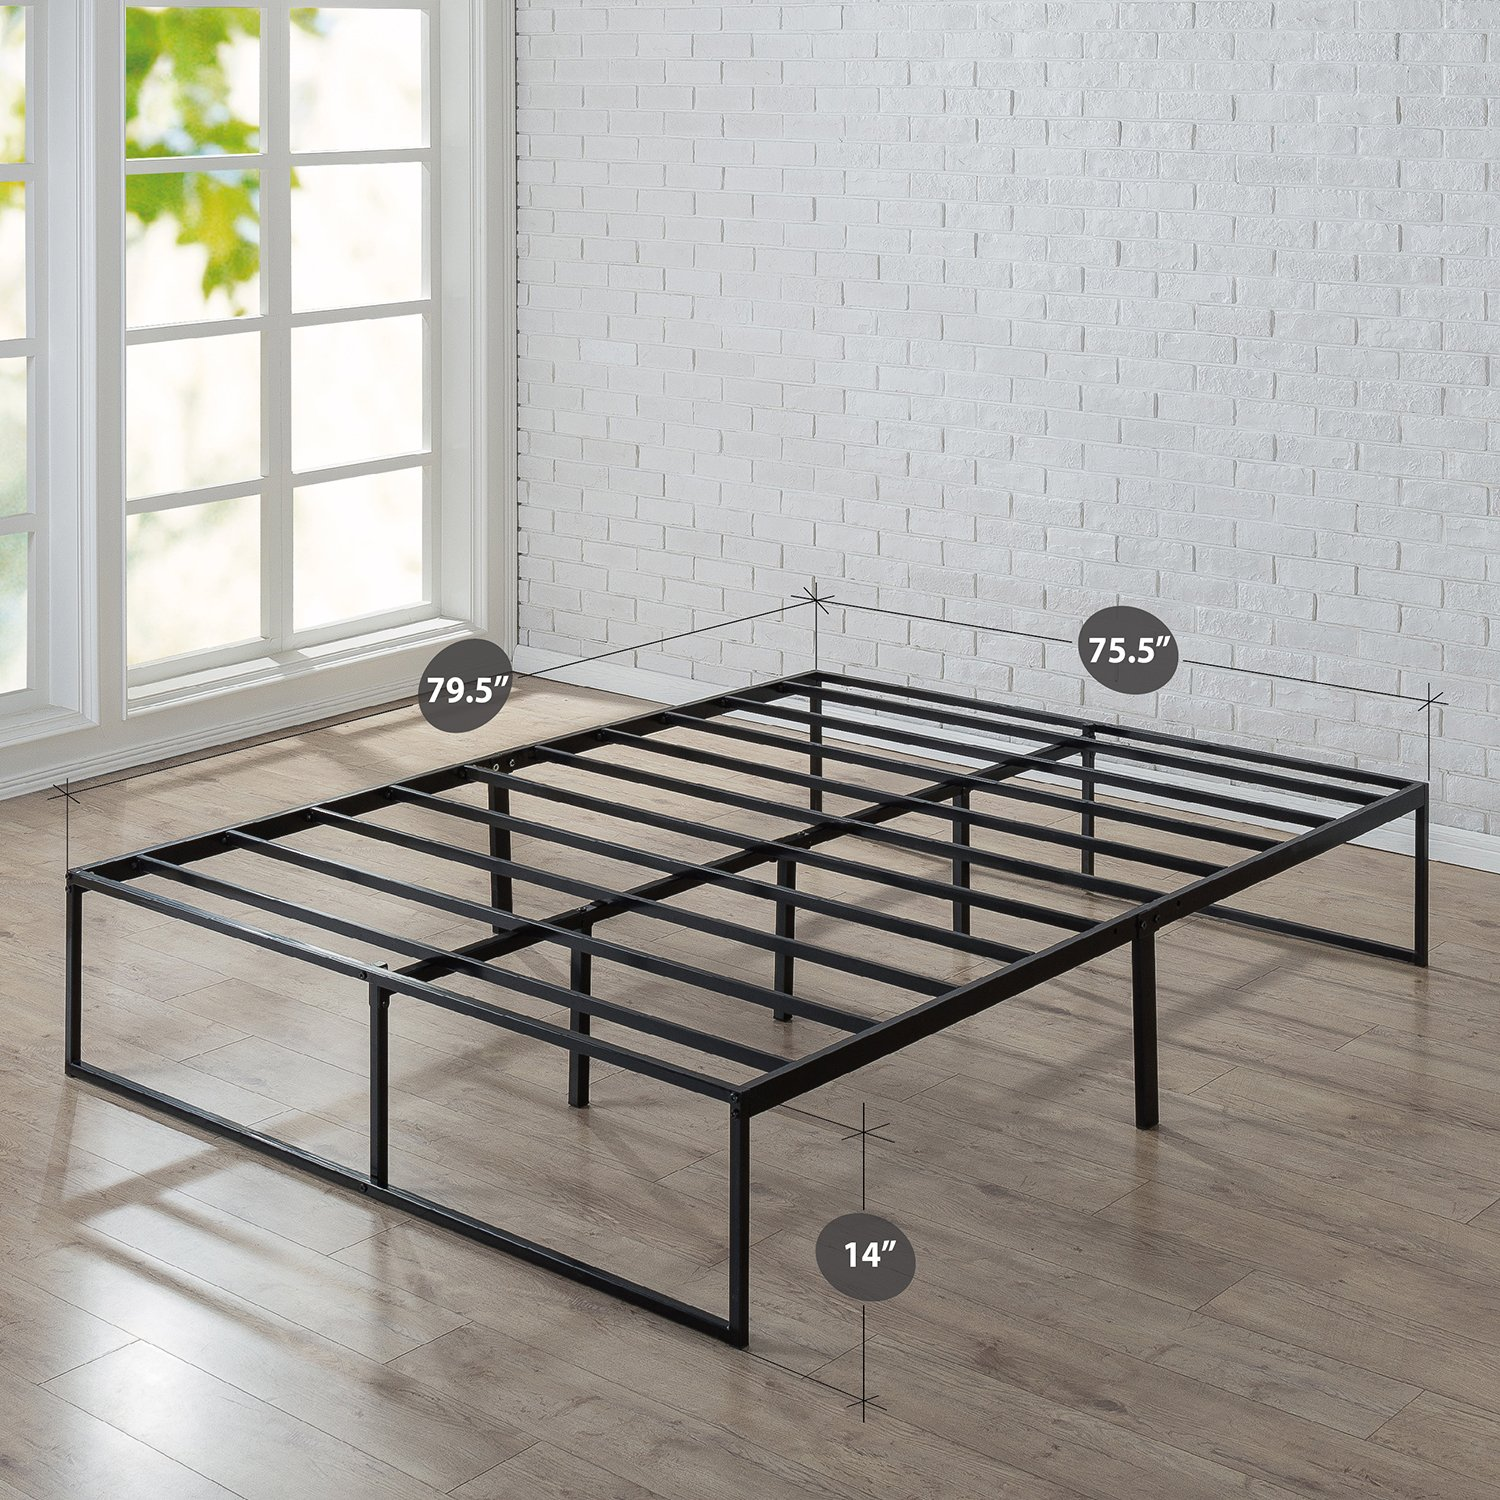 Zinus 14 Inch Platforma Bed Frame, Mattress Foundation, No Box Spring needed, Steel Slat Support, King by Zinus (Image #2)